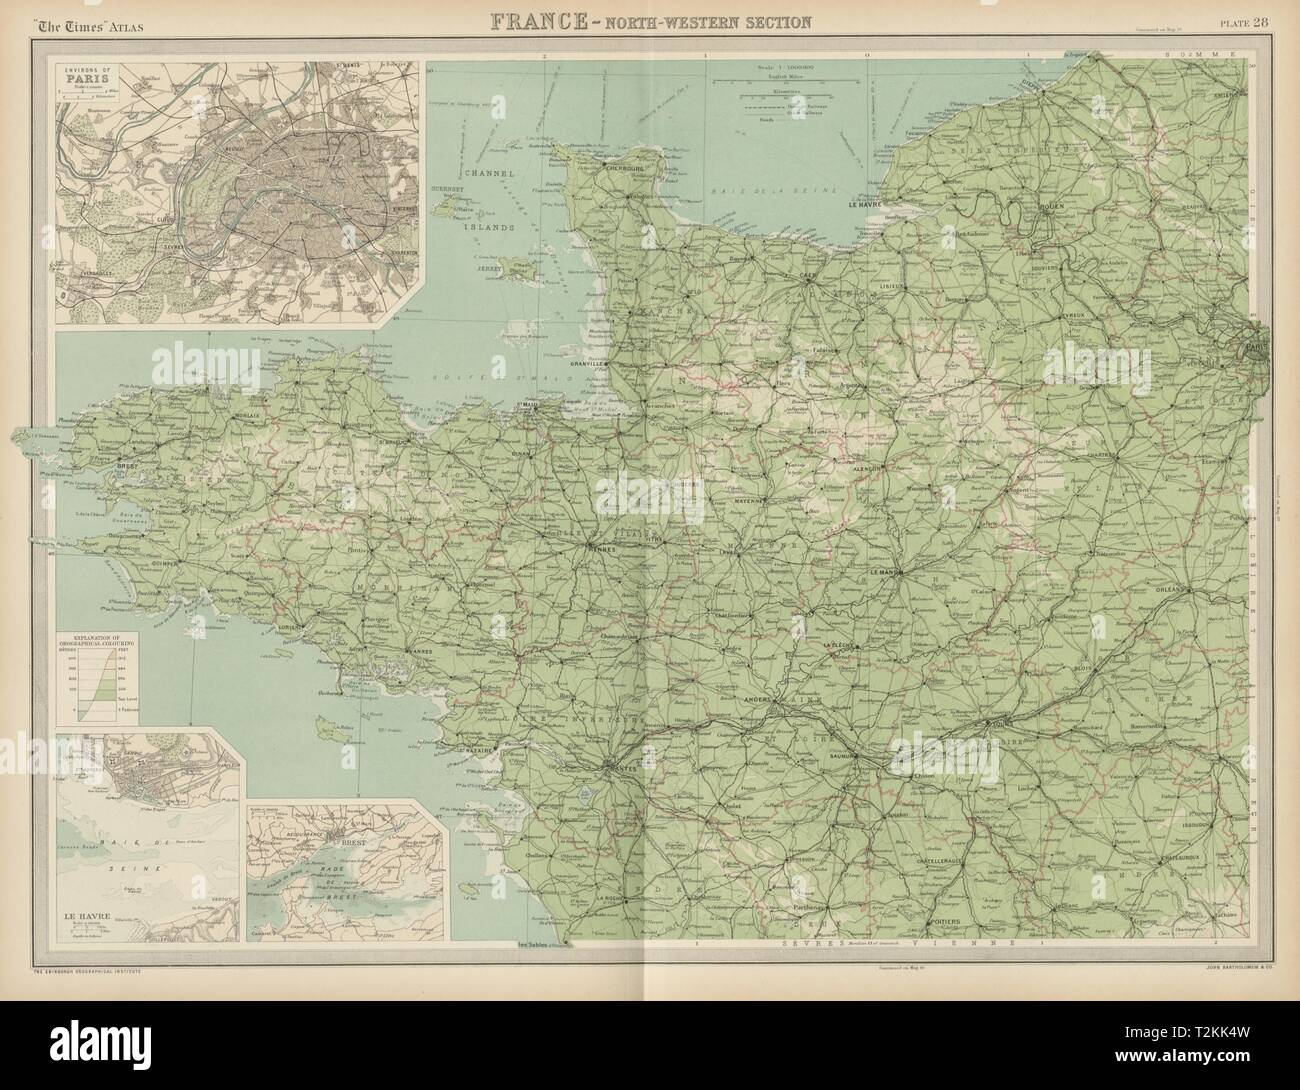 Map Of Western France.North Western France Brittany Normandy Loire Valley The Times 1922